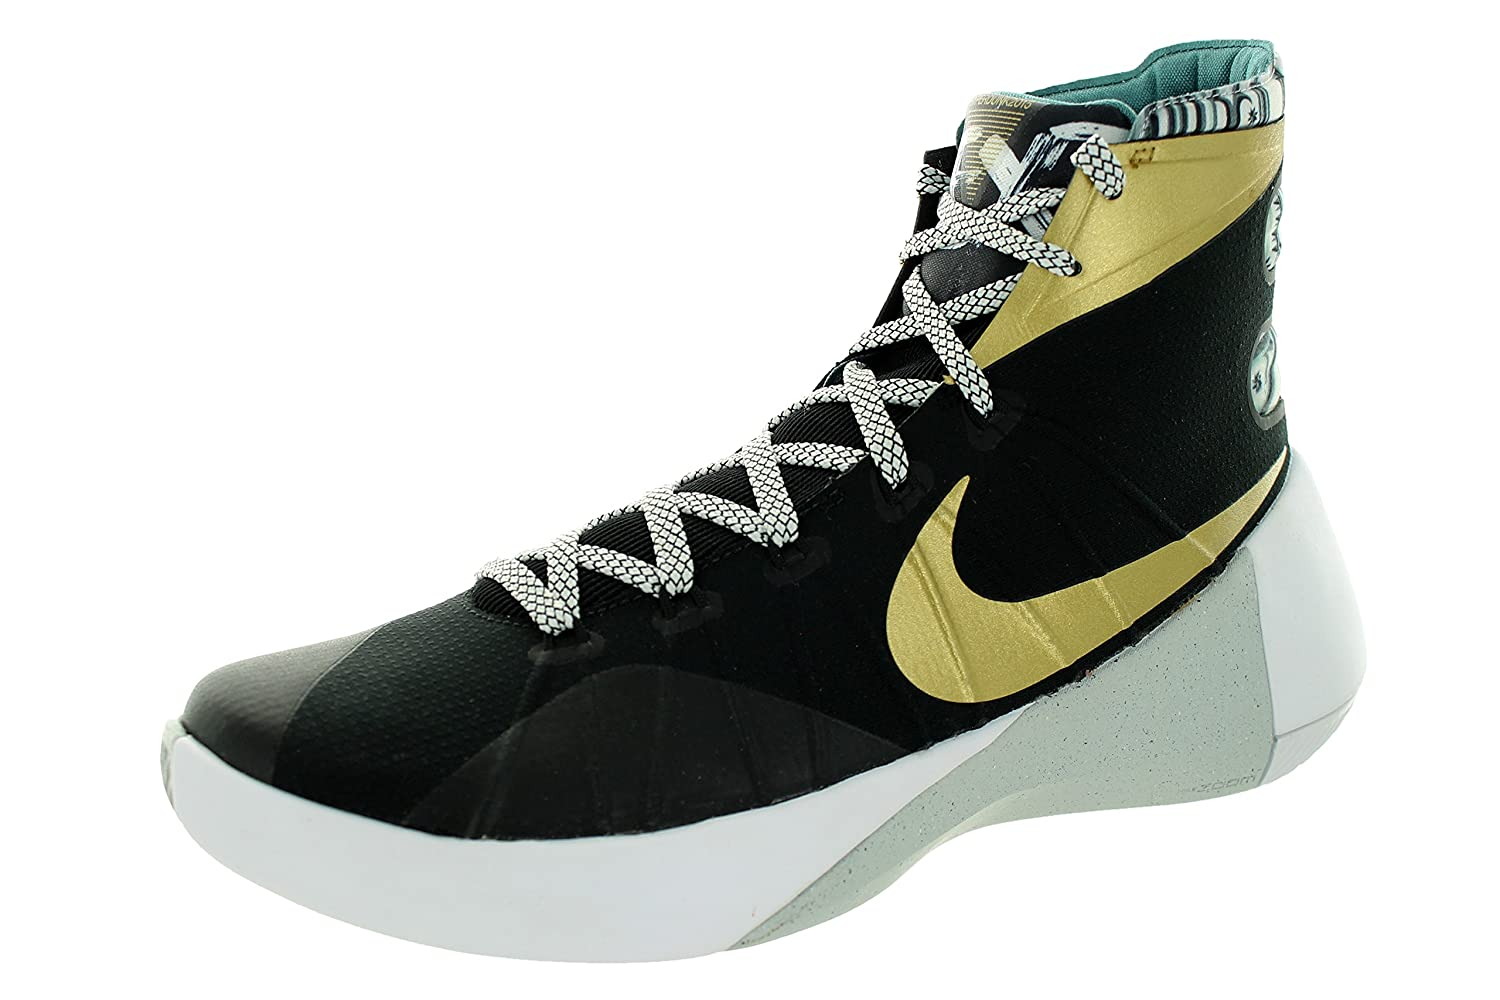 344c29bcb4de Nike Hyperdunk 2015 Lmtd Blk Mtllc Gld Lt Wld Mng Grn H Basketball Shoe 10  Men Us  Amazon.co.uk  Sports   Outdoors